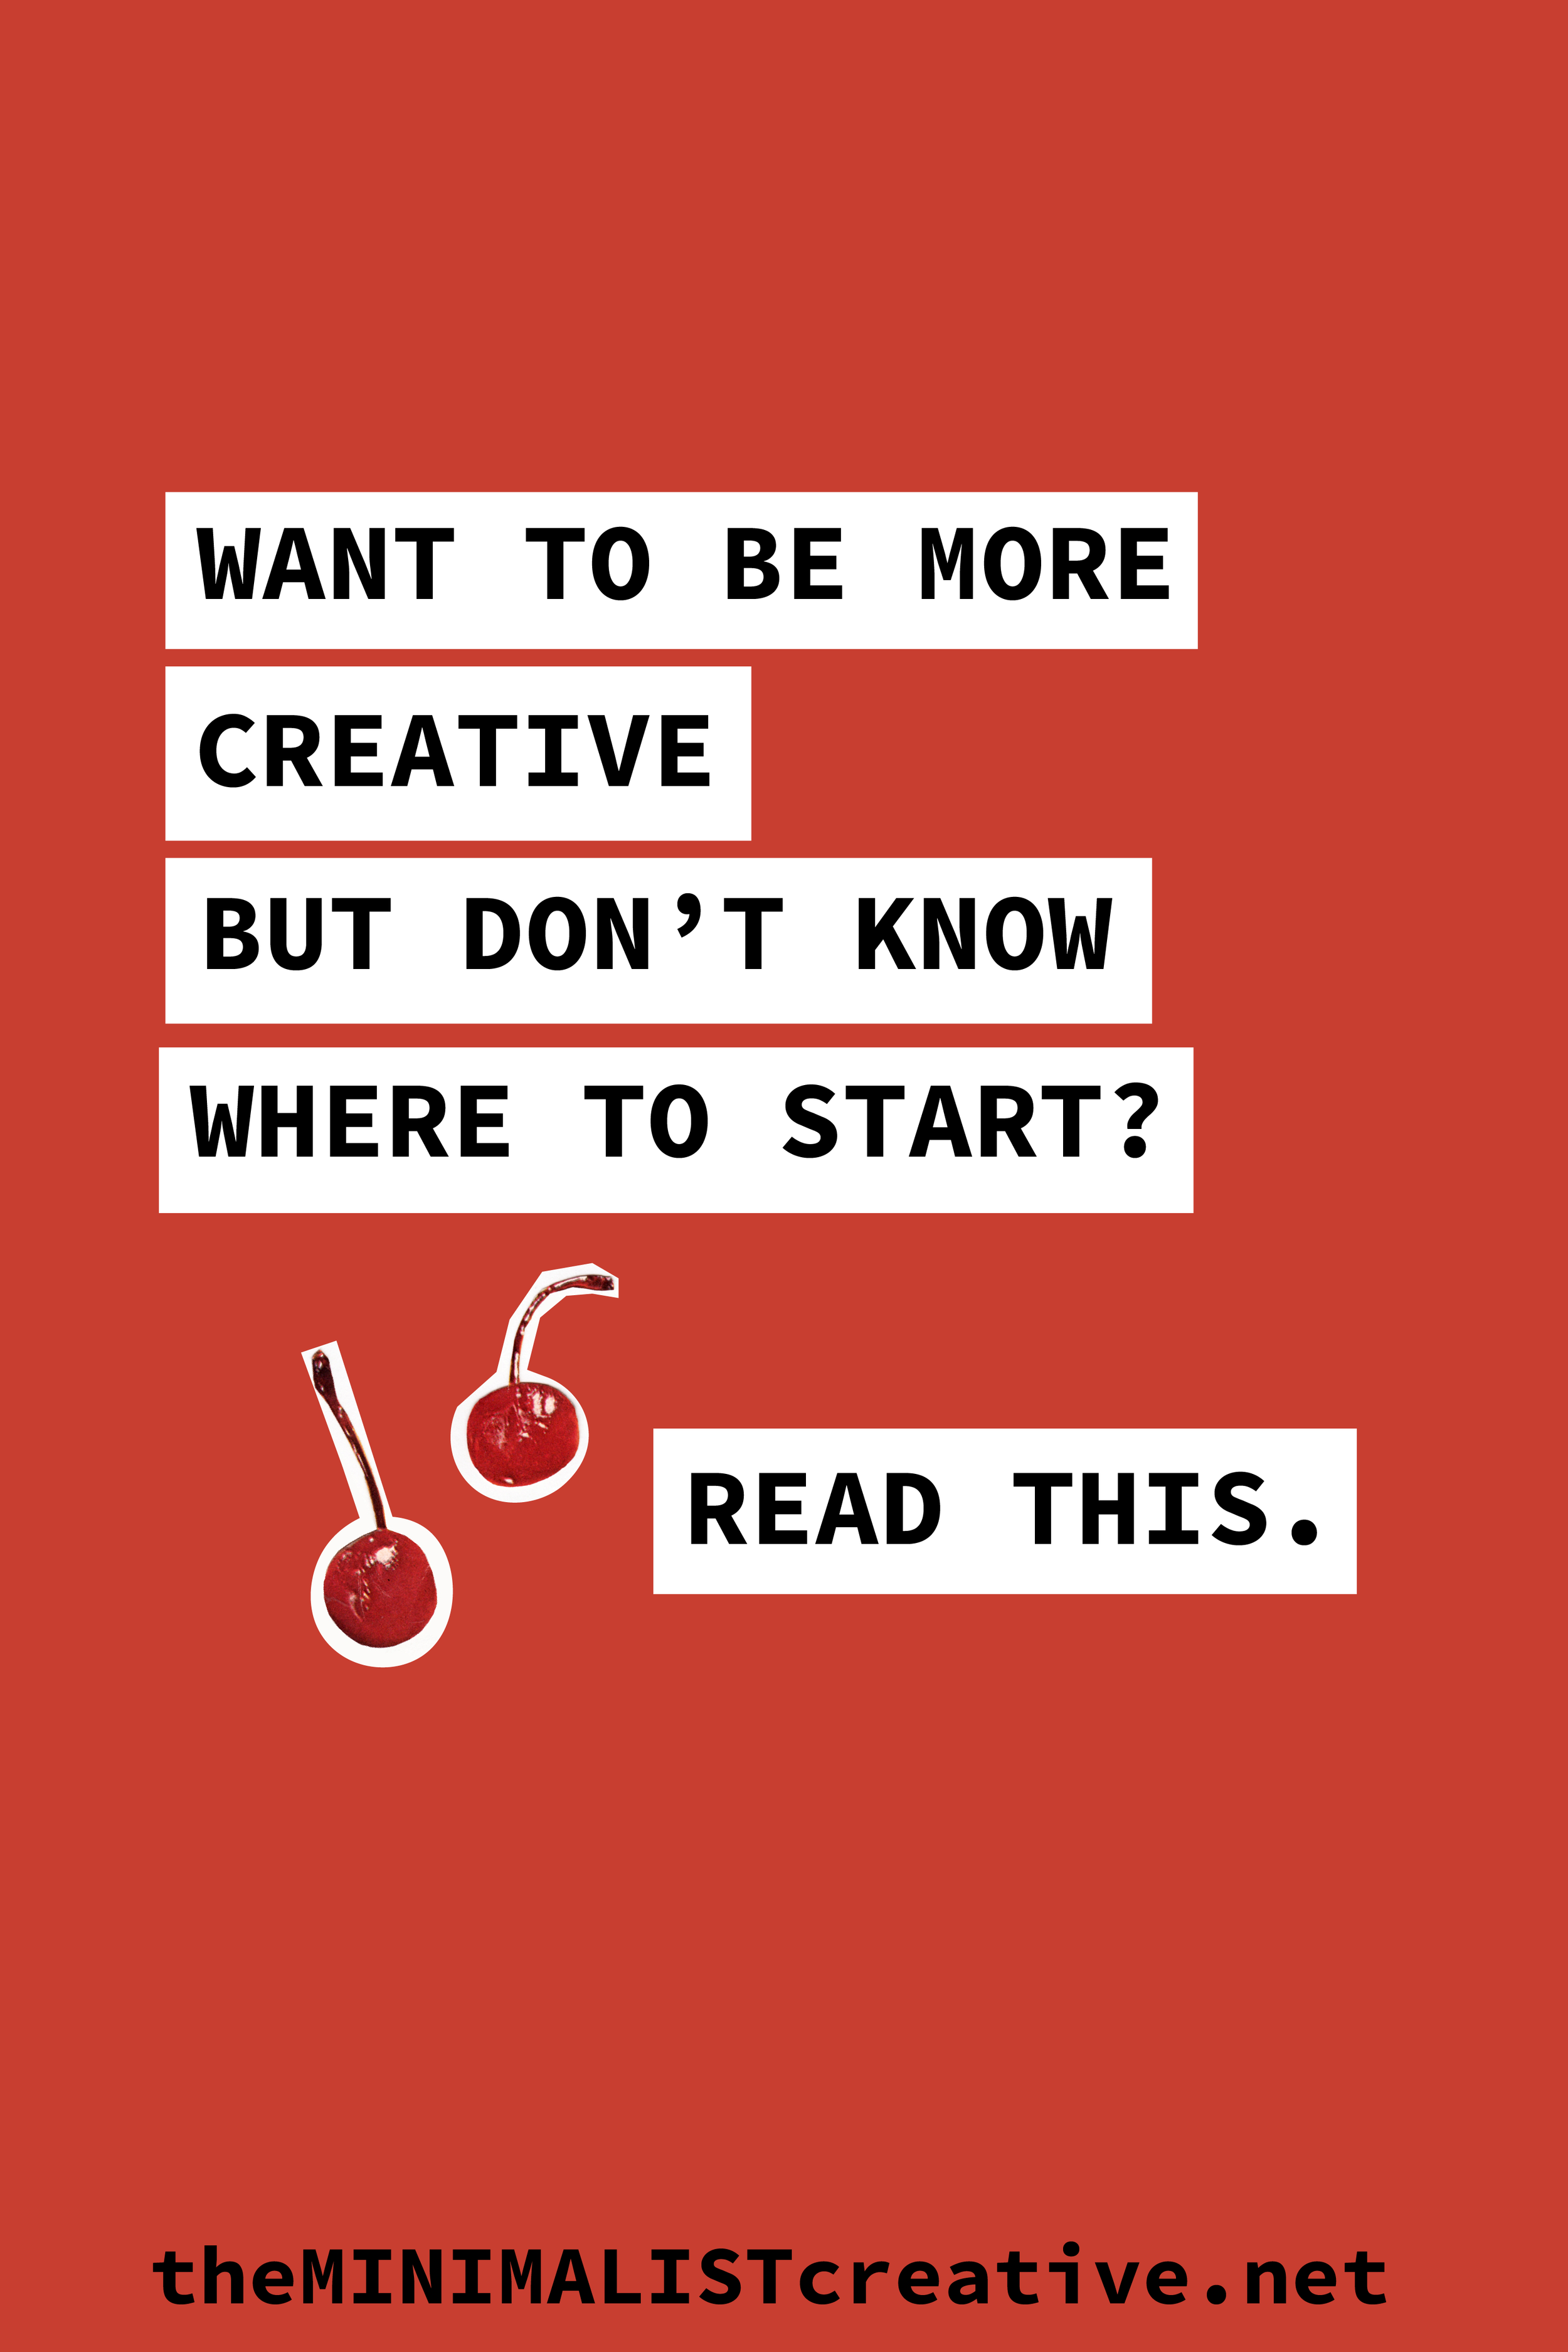 Want To Be More Creative But Don't Know Where To Start? Read This.